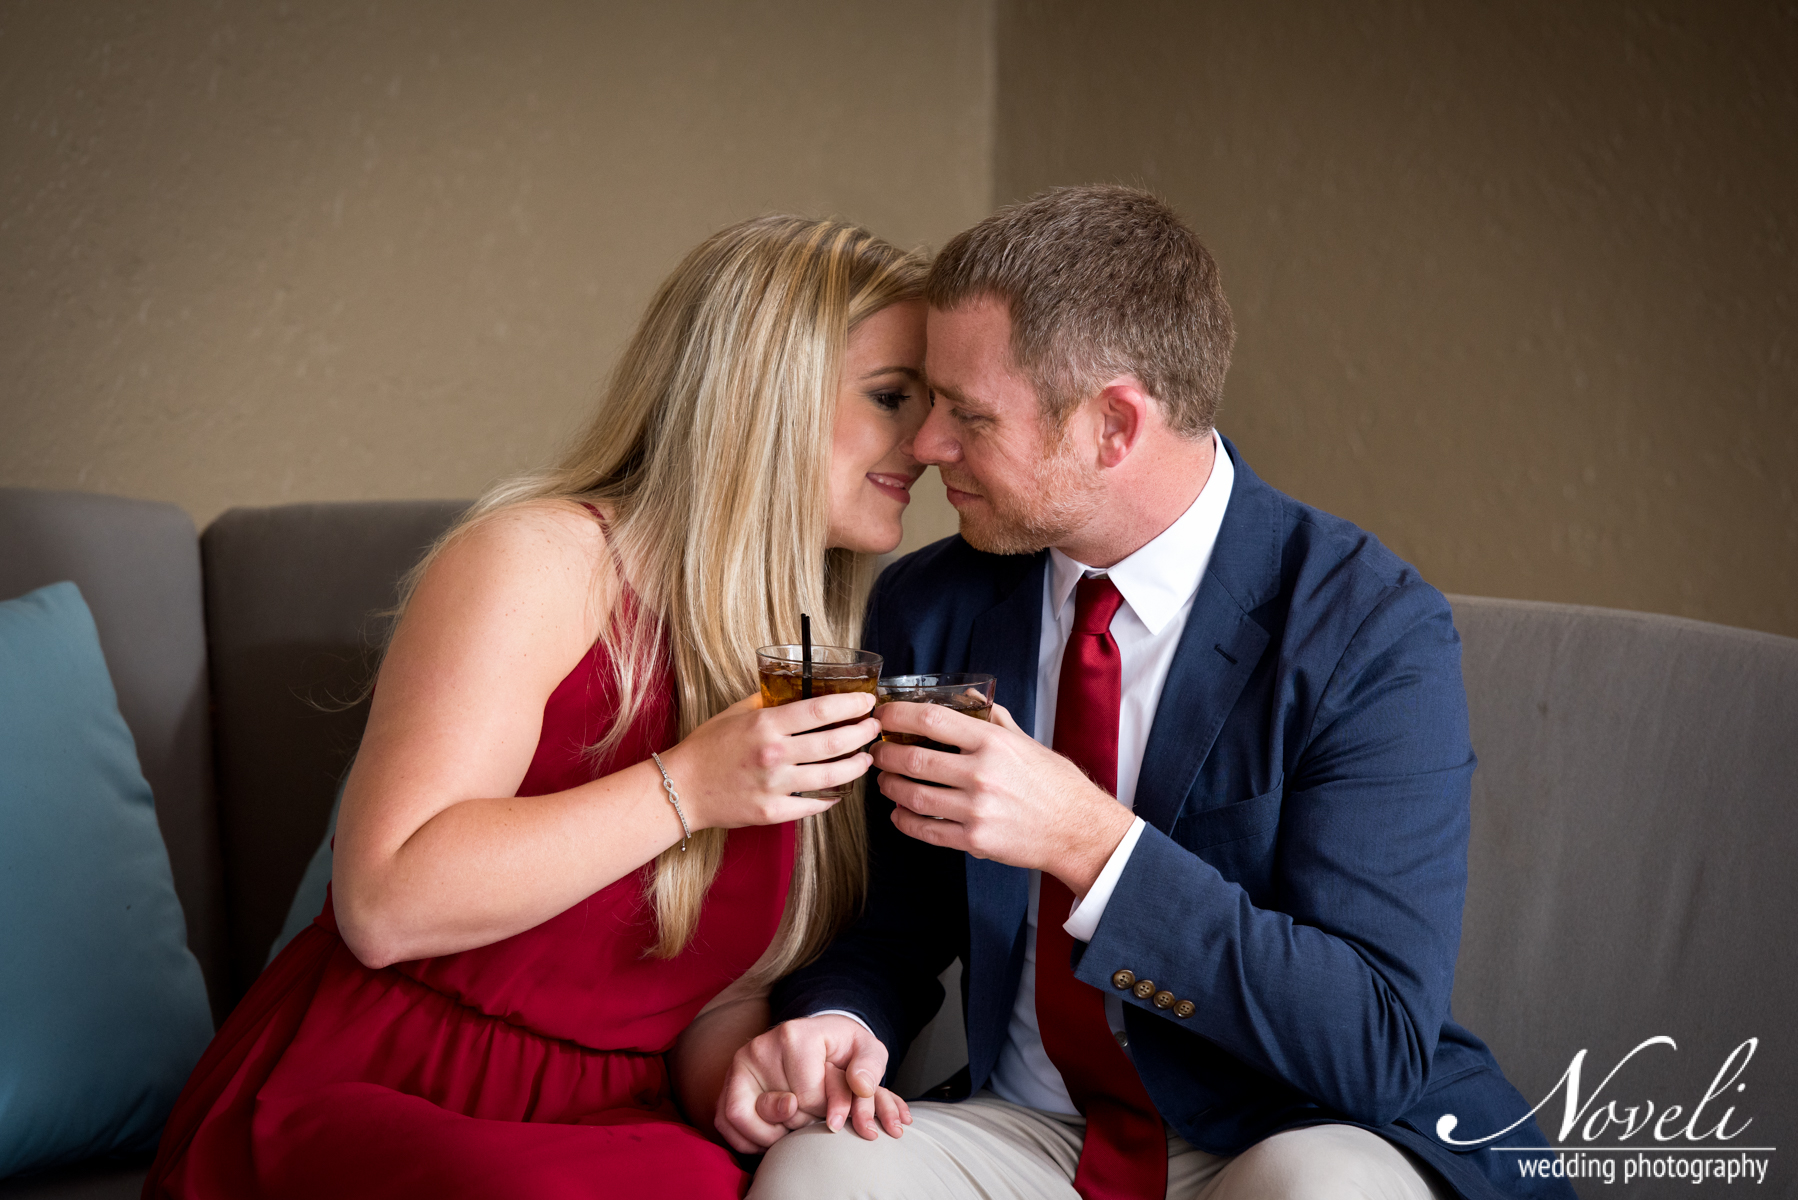 embassy-suites-engagement-photo-mr-001.jpg